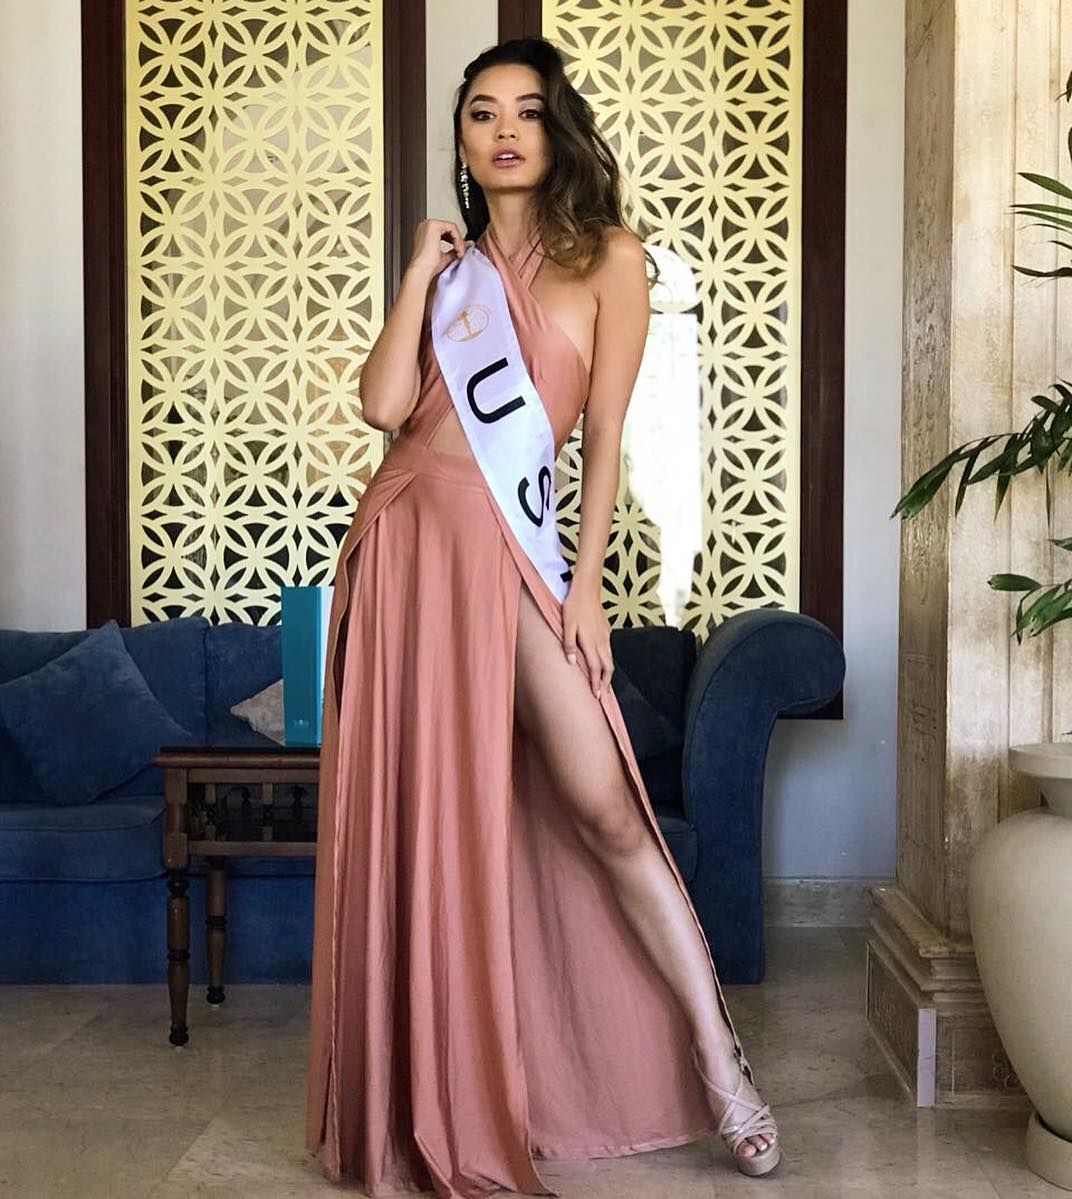 raquel basco, miss international hawaii 2019/miss intercontinental usa 2017. - Página 4 26183410